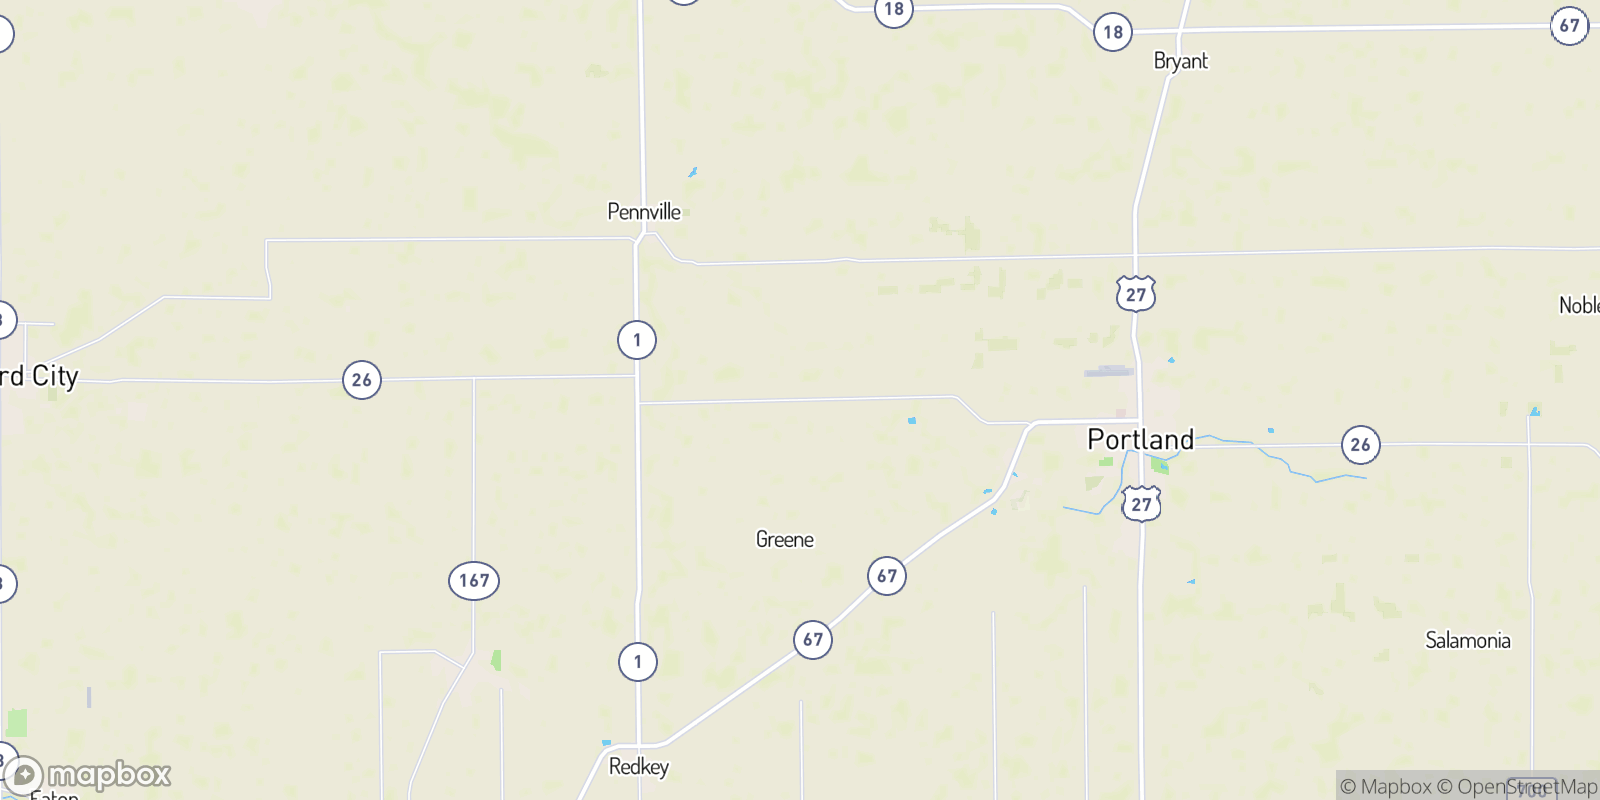 The best camping near Pony, Indiana